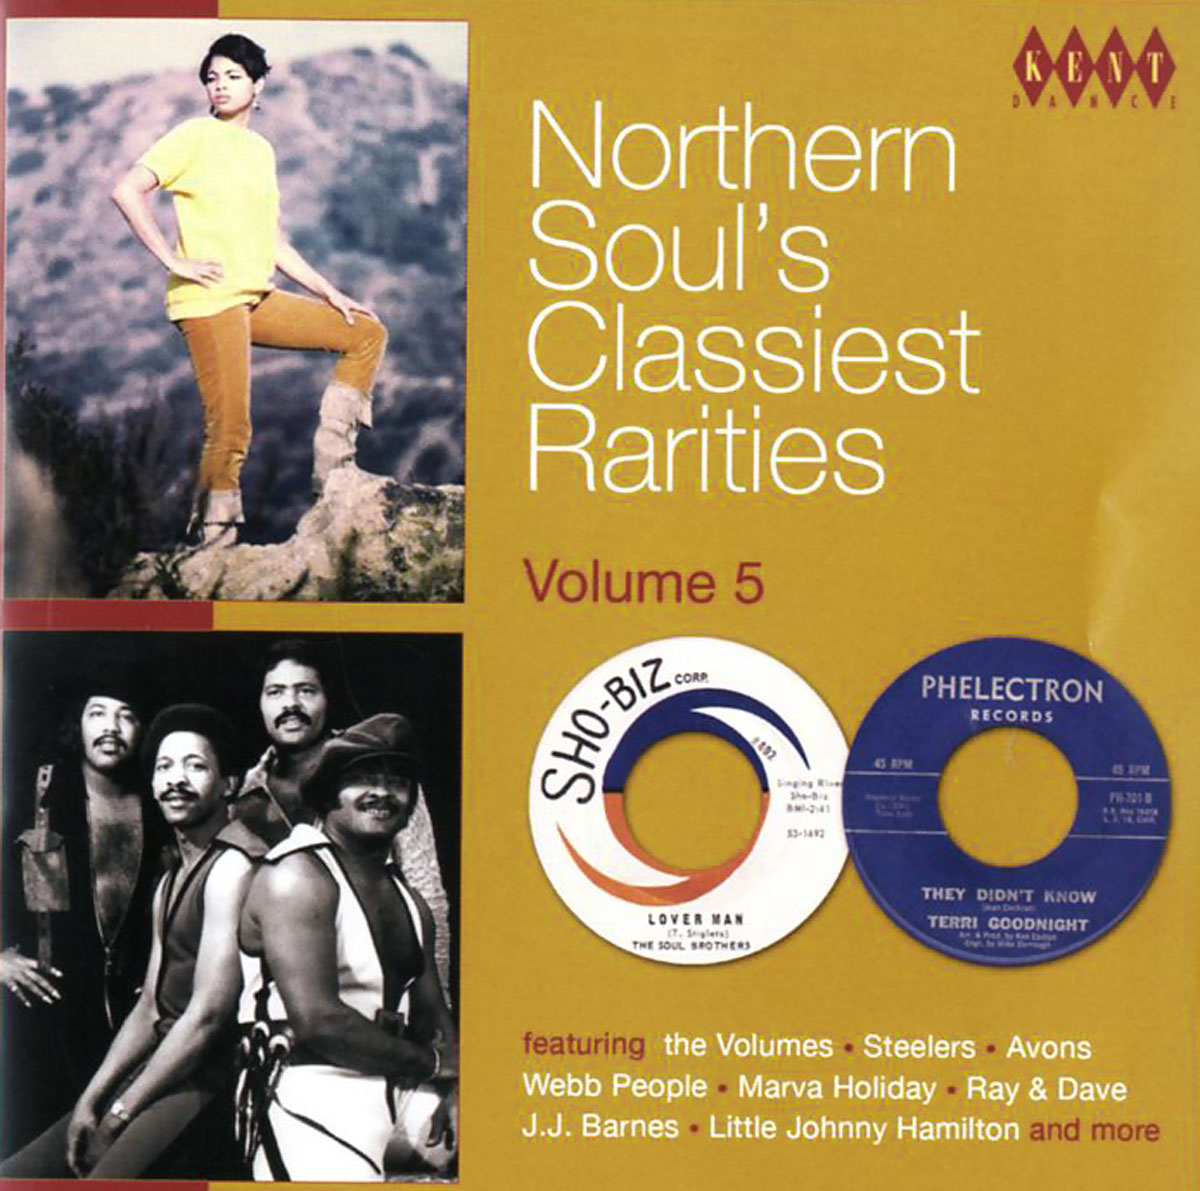 The Volumes,Marva Holiday,The Steelers,Клиффорд Карри,Mouse,The Traps,J. J. Barnes,The Soul Brothers,Мел Дэвис,Дэвид Пиплс Northern Soul's Classiest Rarities. Volume 5 110x36cm musical mat keyboard music carpets piano play mat touch keys melody instrument educational toy gift for boys